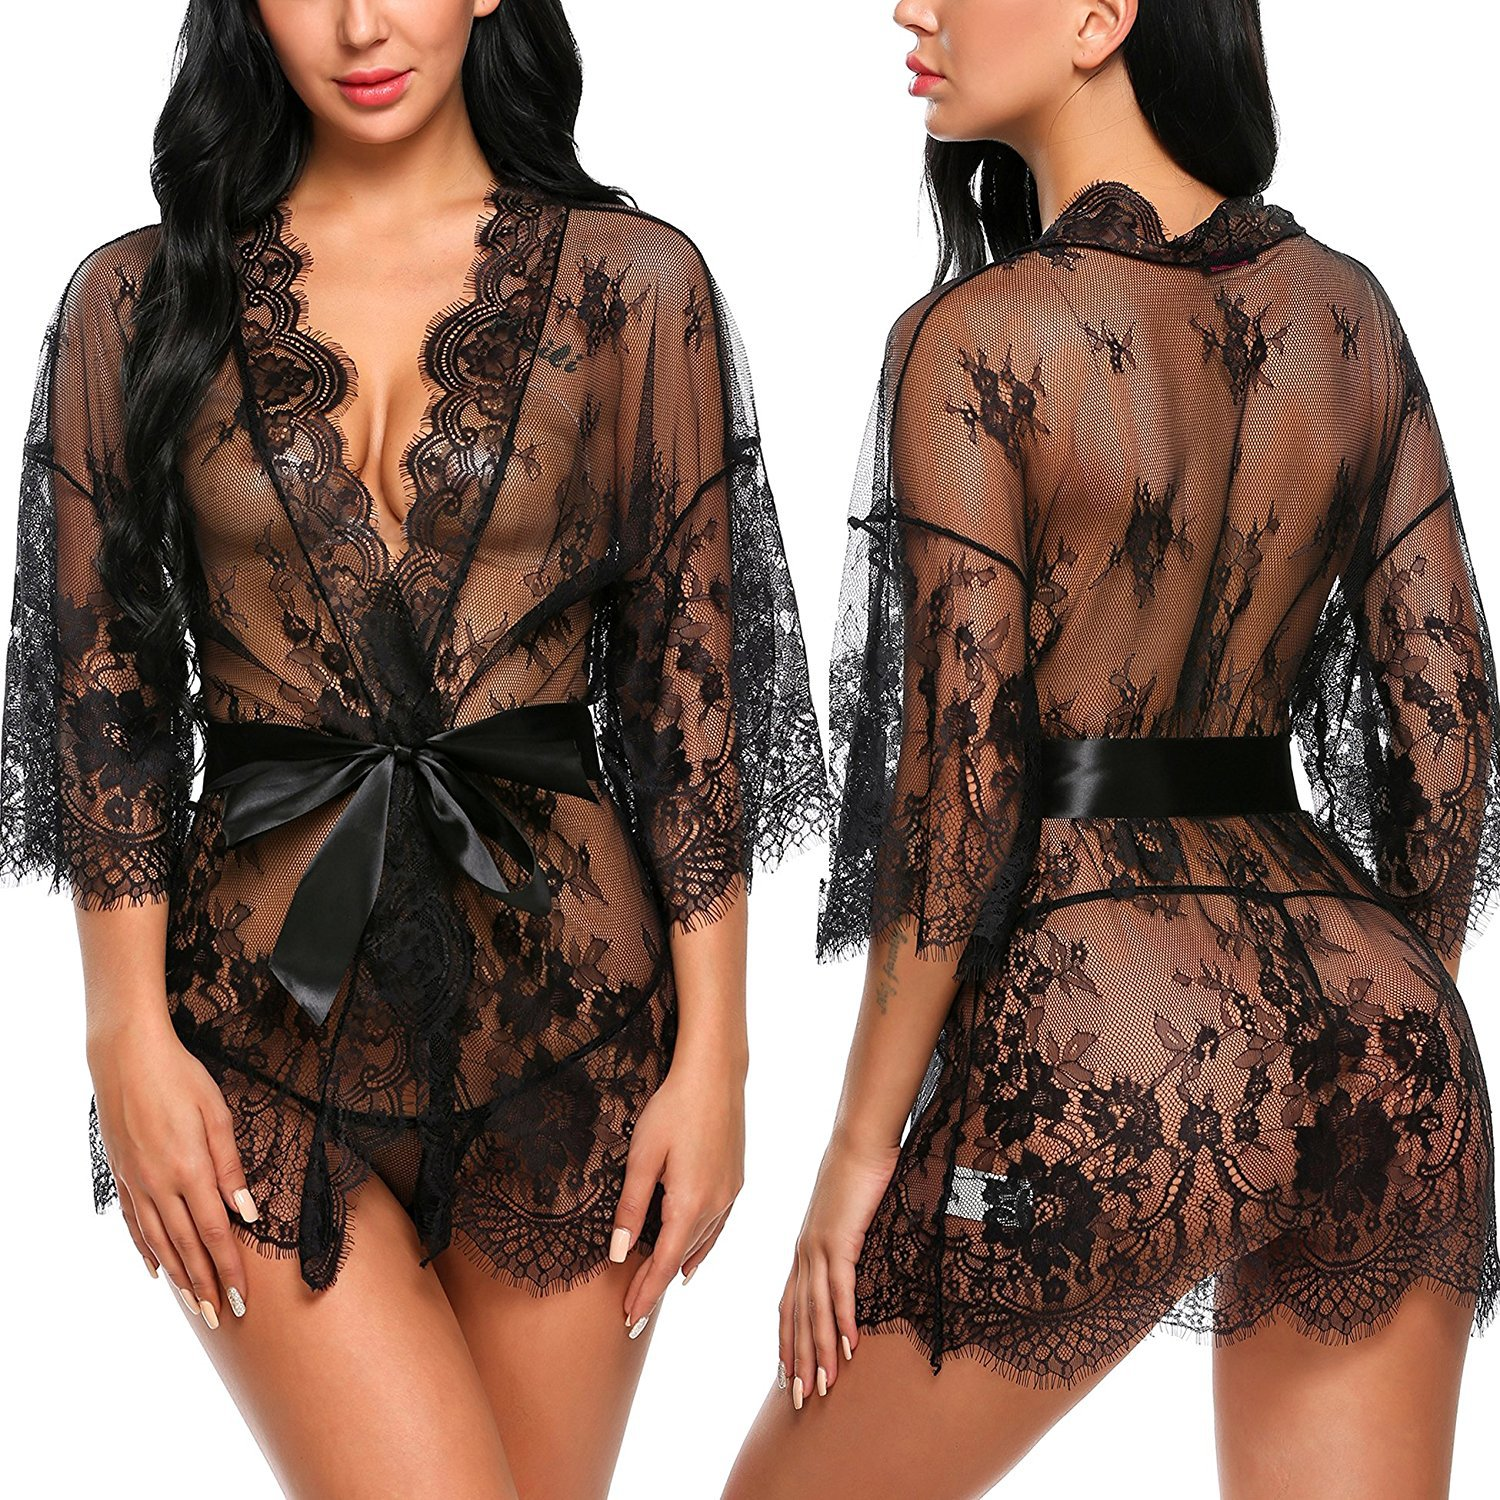 Sleepwear Nightgown Lingerie Bandage G-String Silky Sheer See-Through Sexy Deep-V Women title=